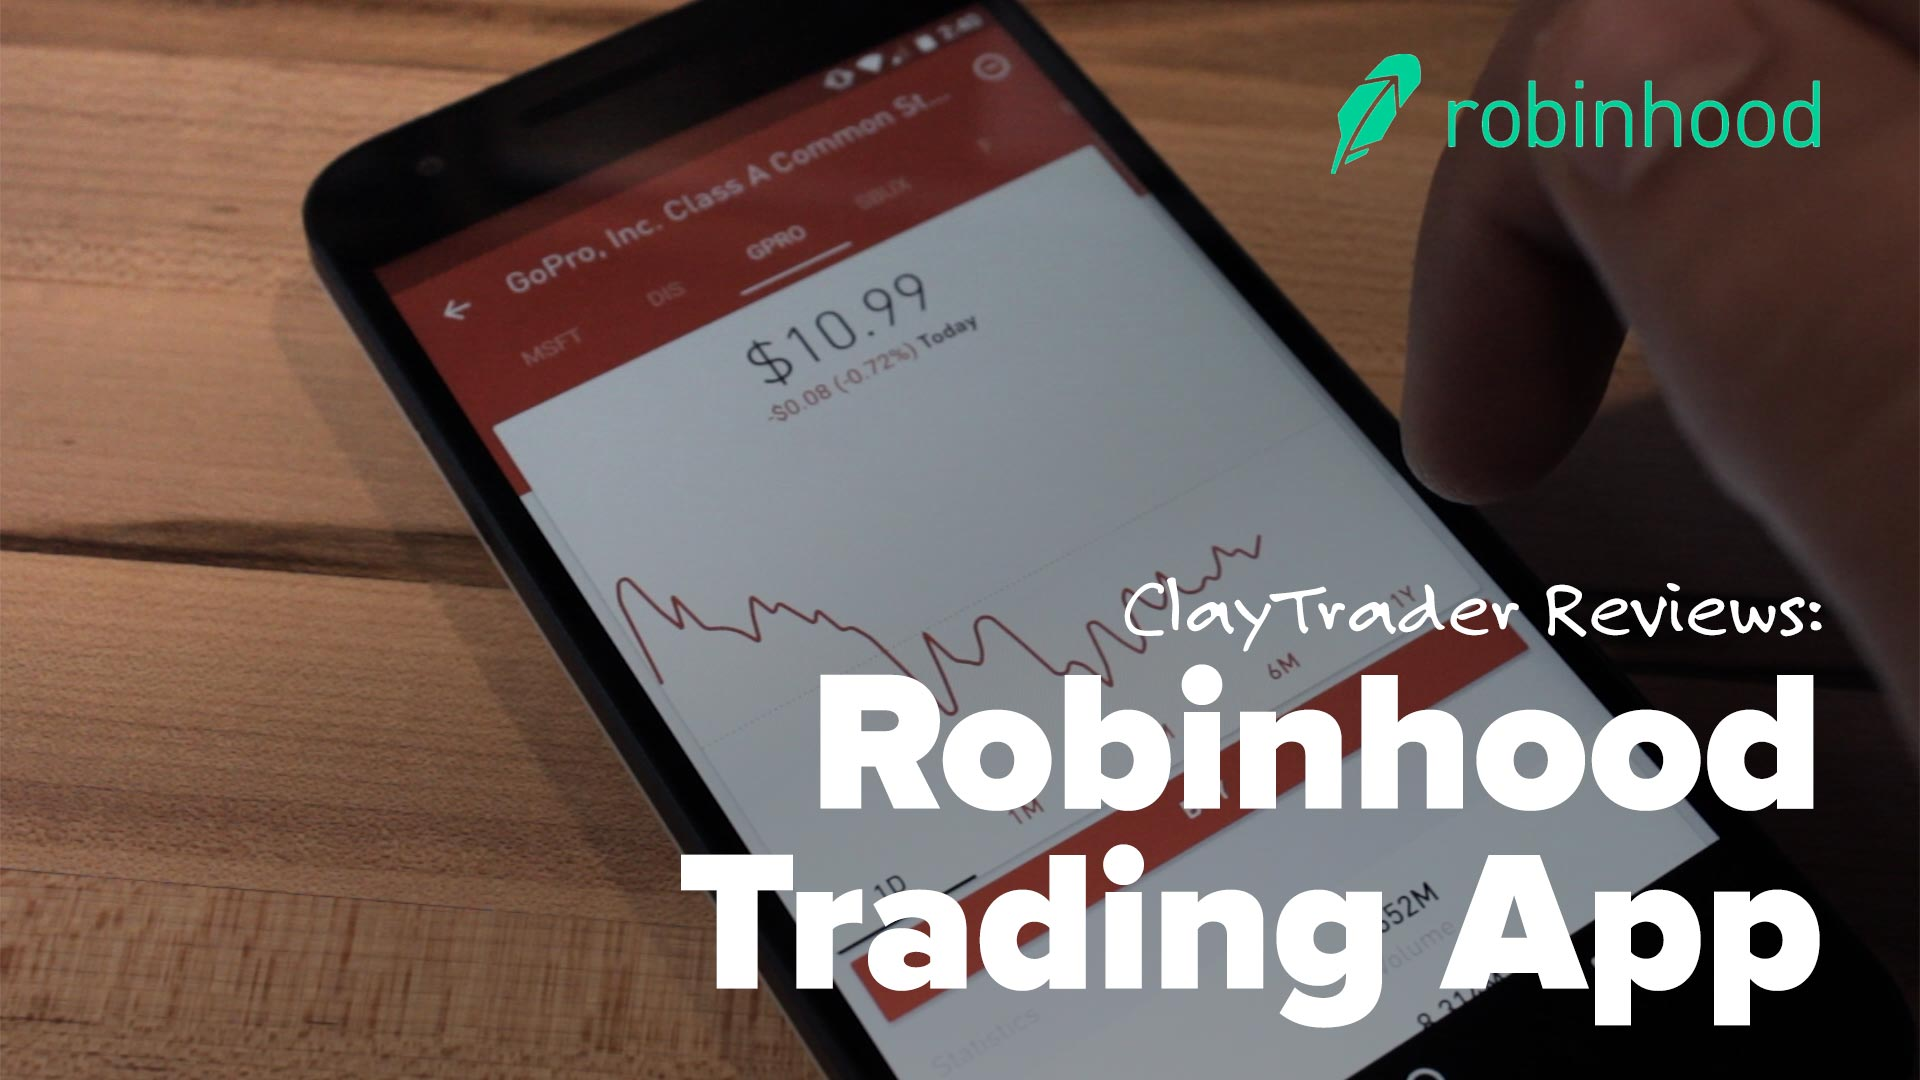 Robinhood Commission-Free Investing  Warranty Extension Offer 2020